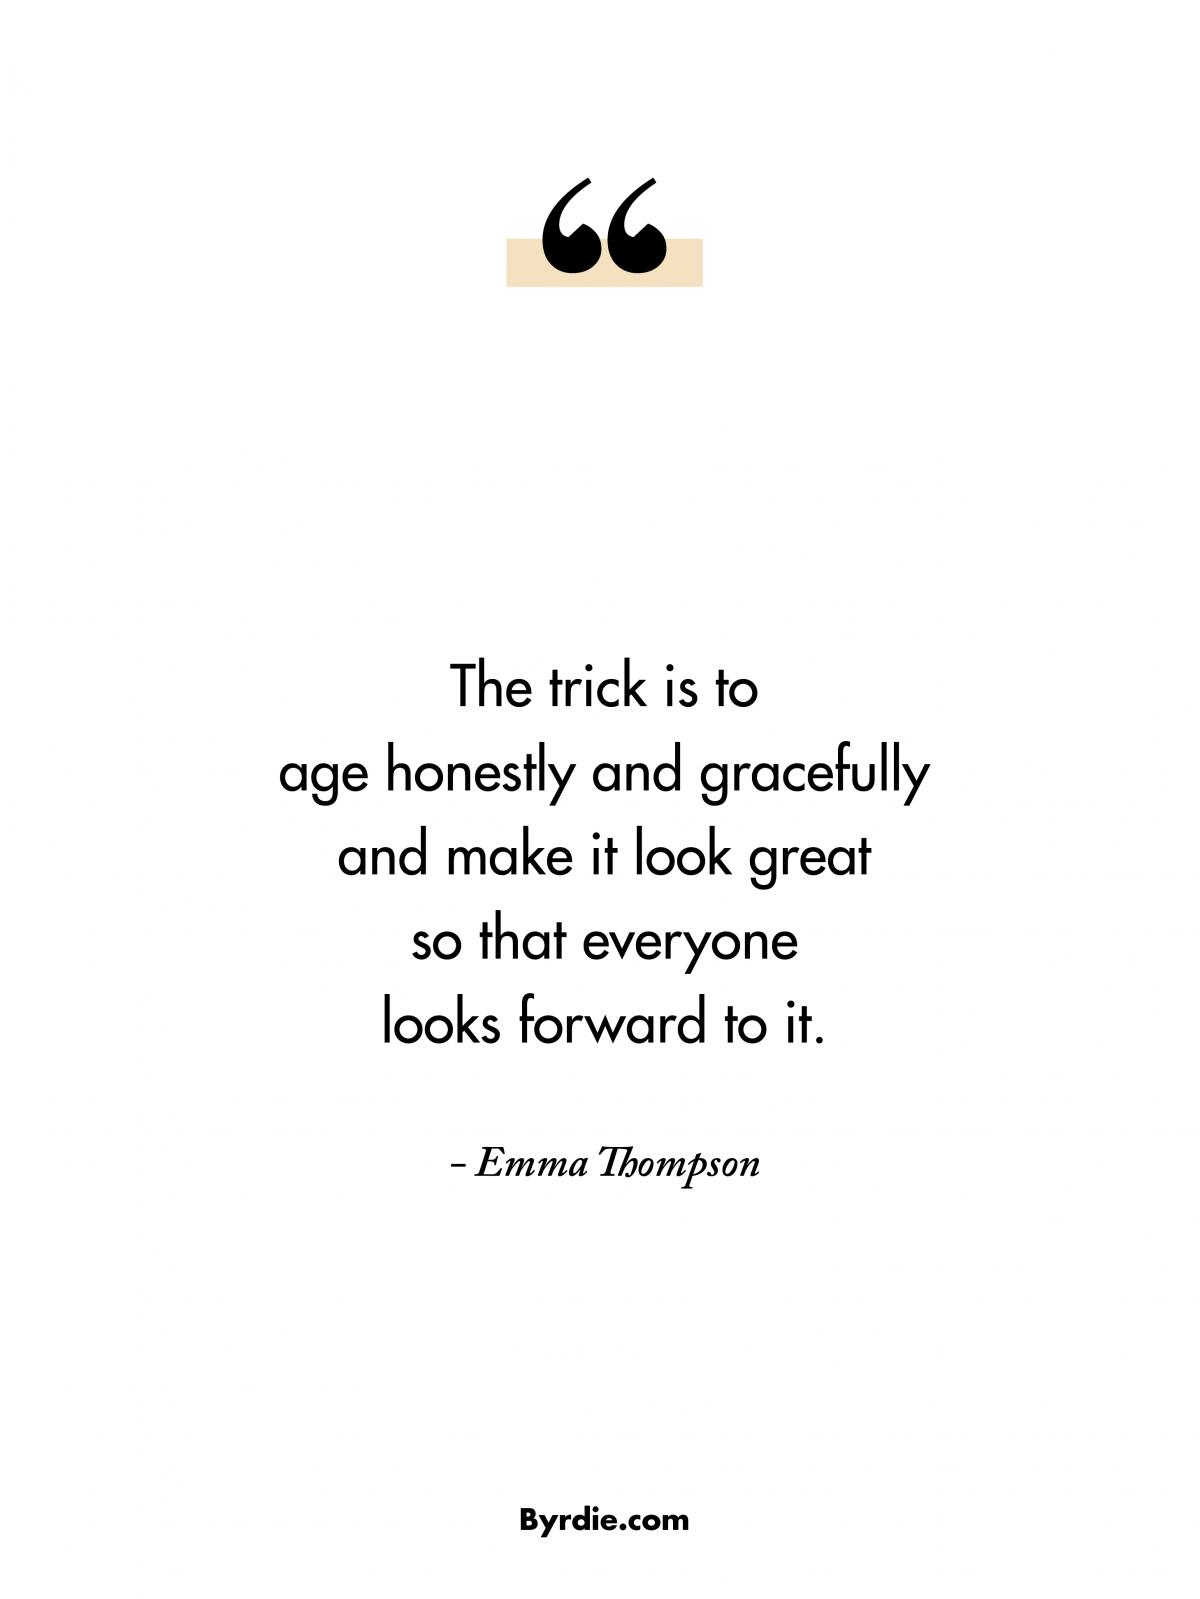 9 Inspiring Celeb Quotes On Aging Celebration Quotes Aging Gracefully Quotes Aging Quotes